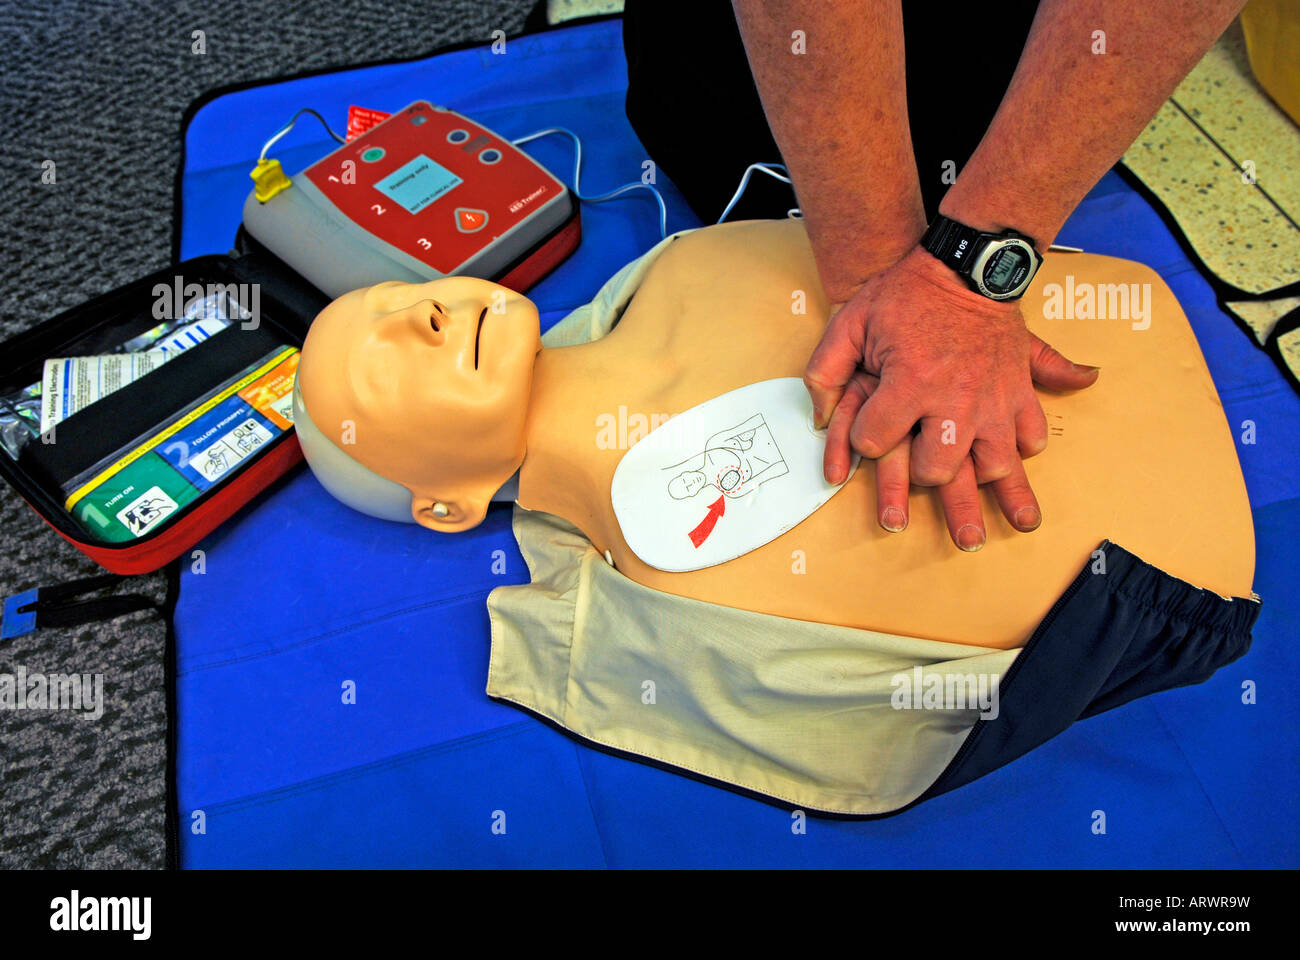 First Responder demonstrating resuscitation technique A voluntary service from St John Ambulance Service - Stock Image